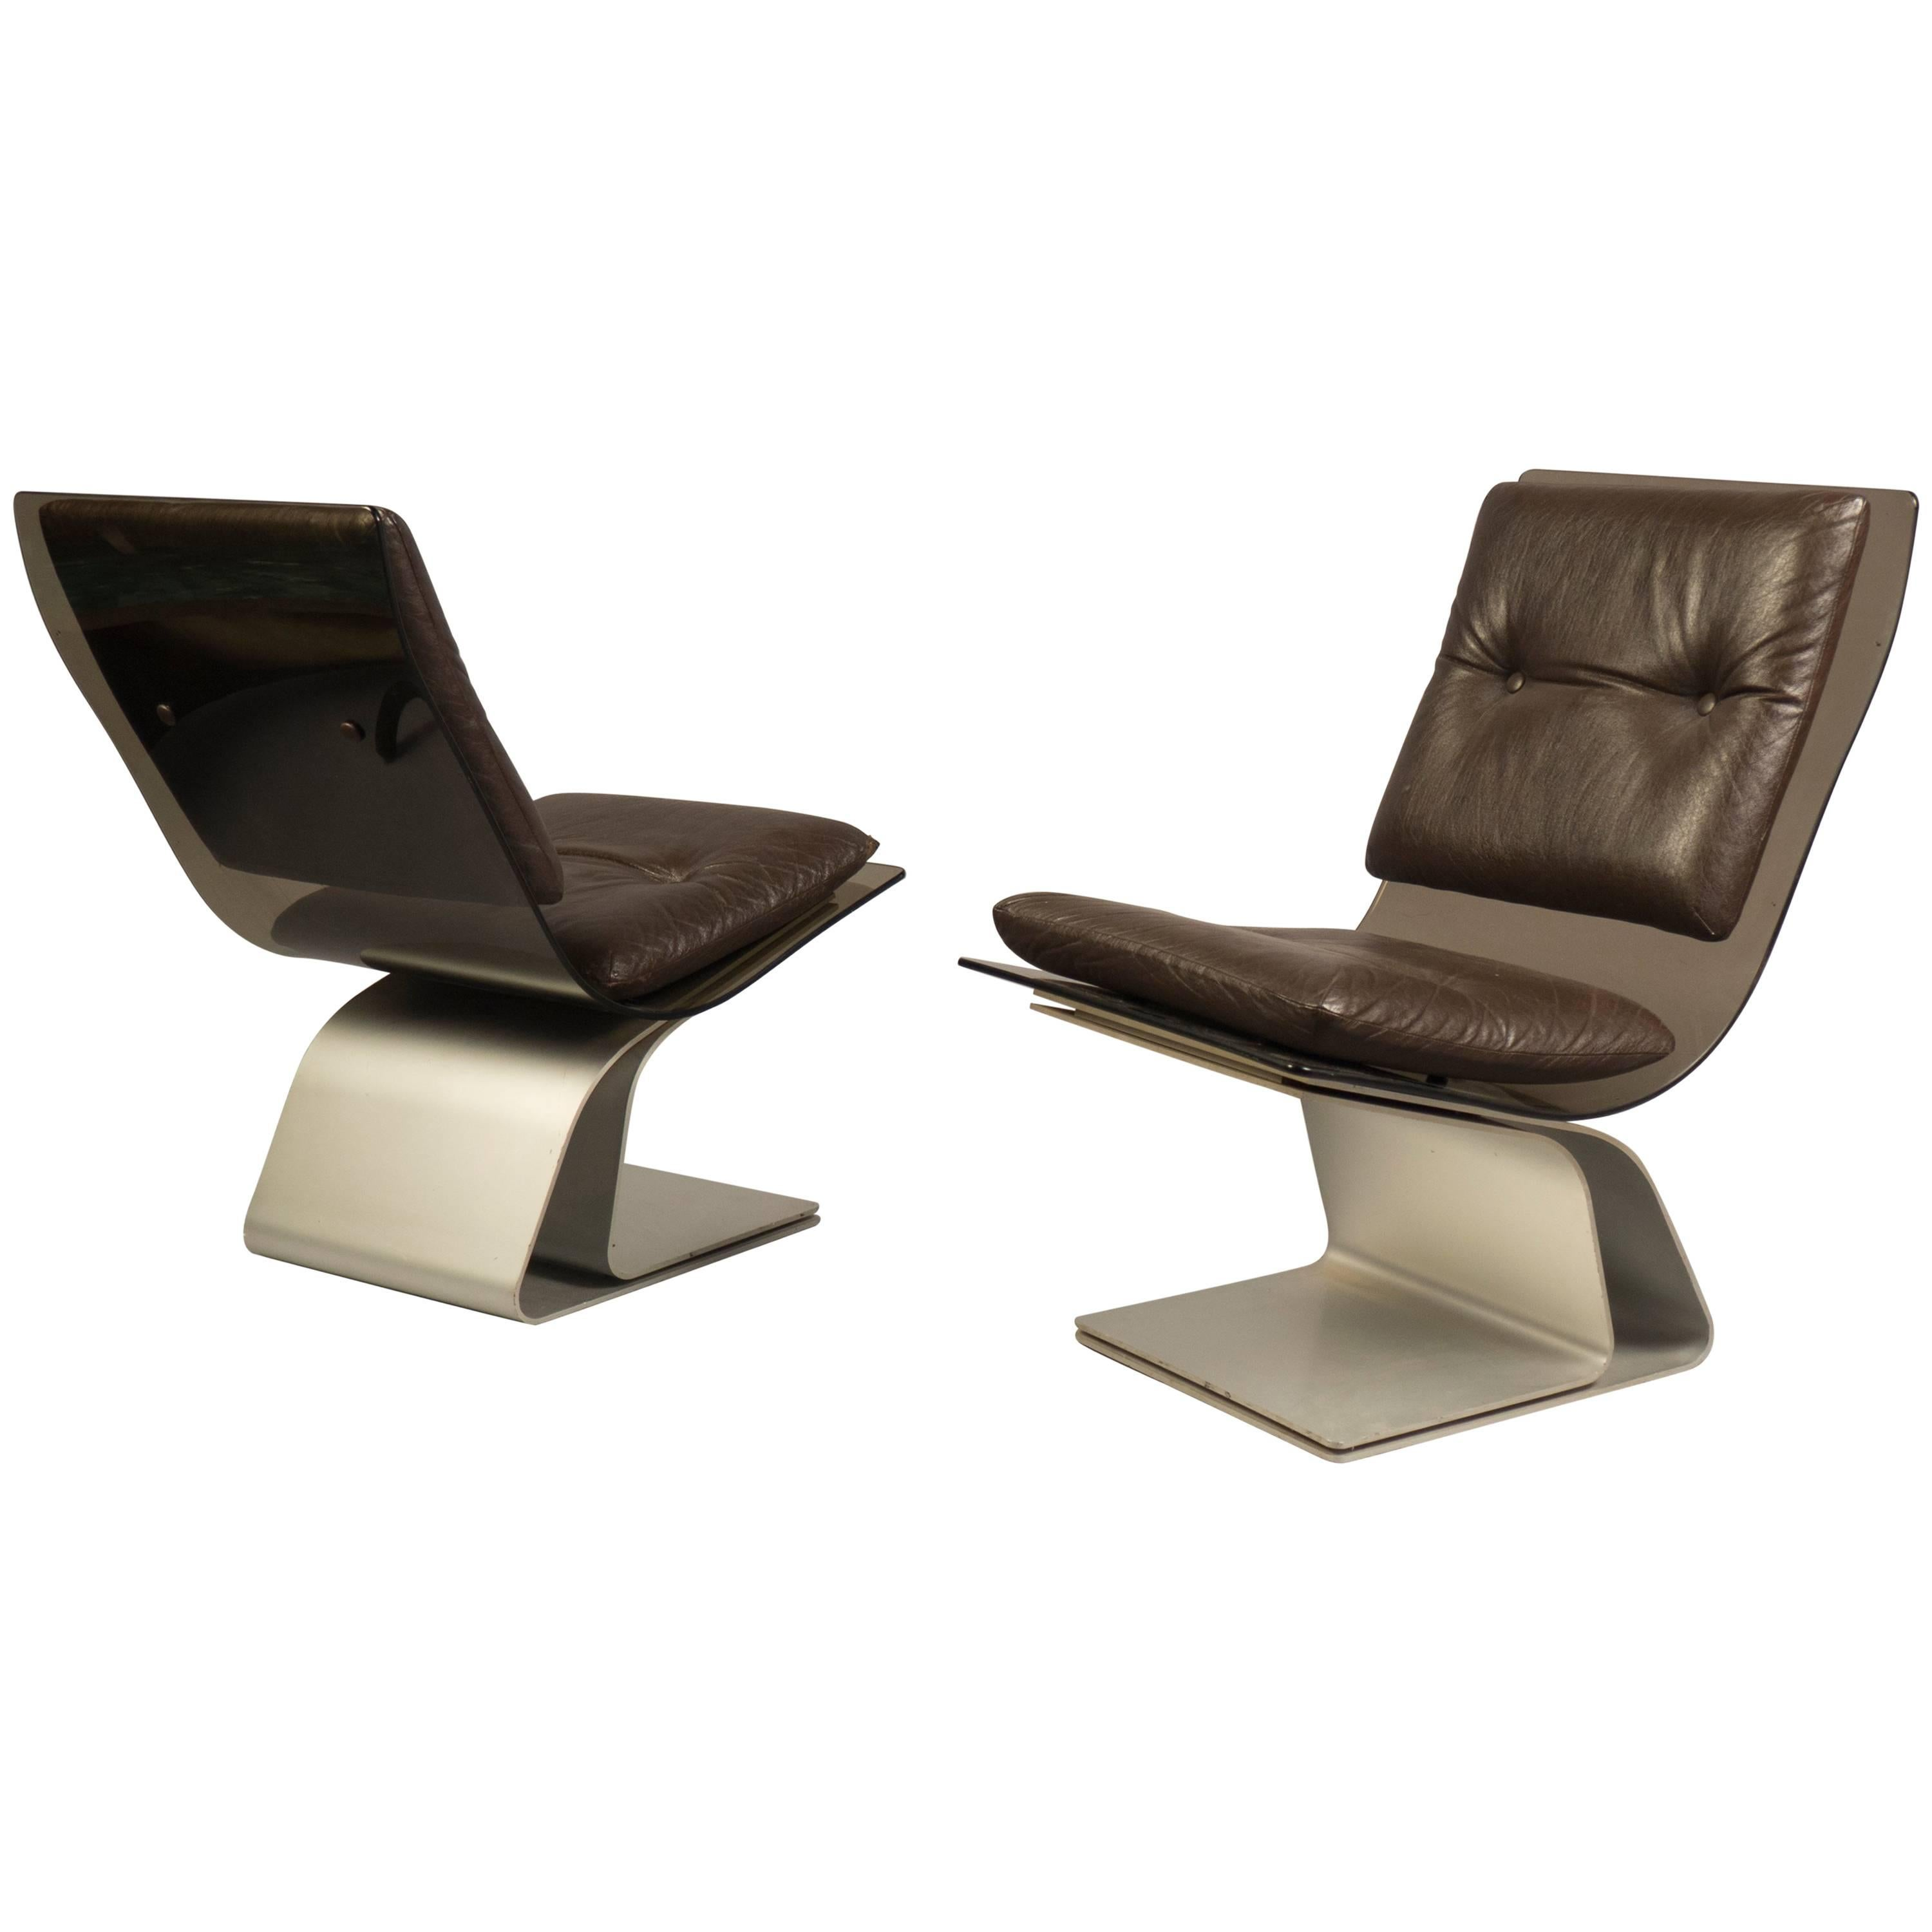 Pair of Slipper Chairs by Maison Jansen, France, 1970s